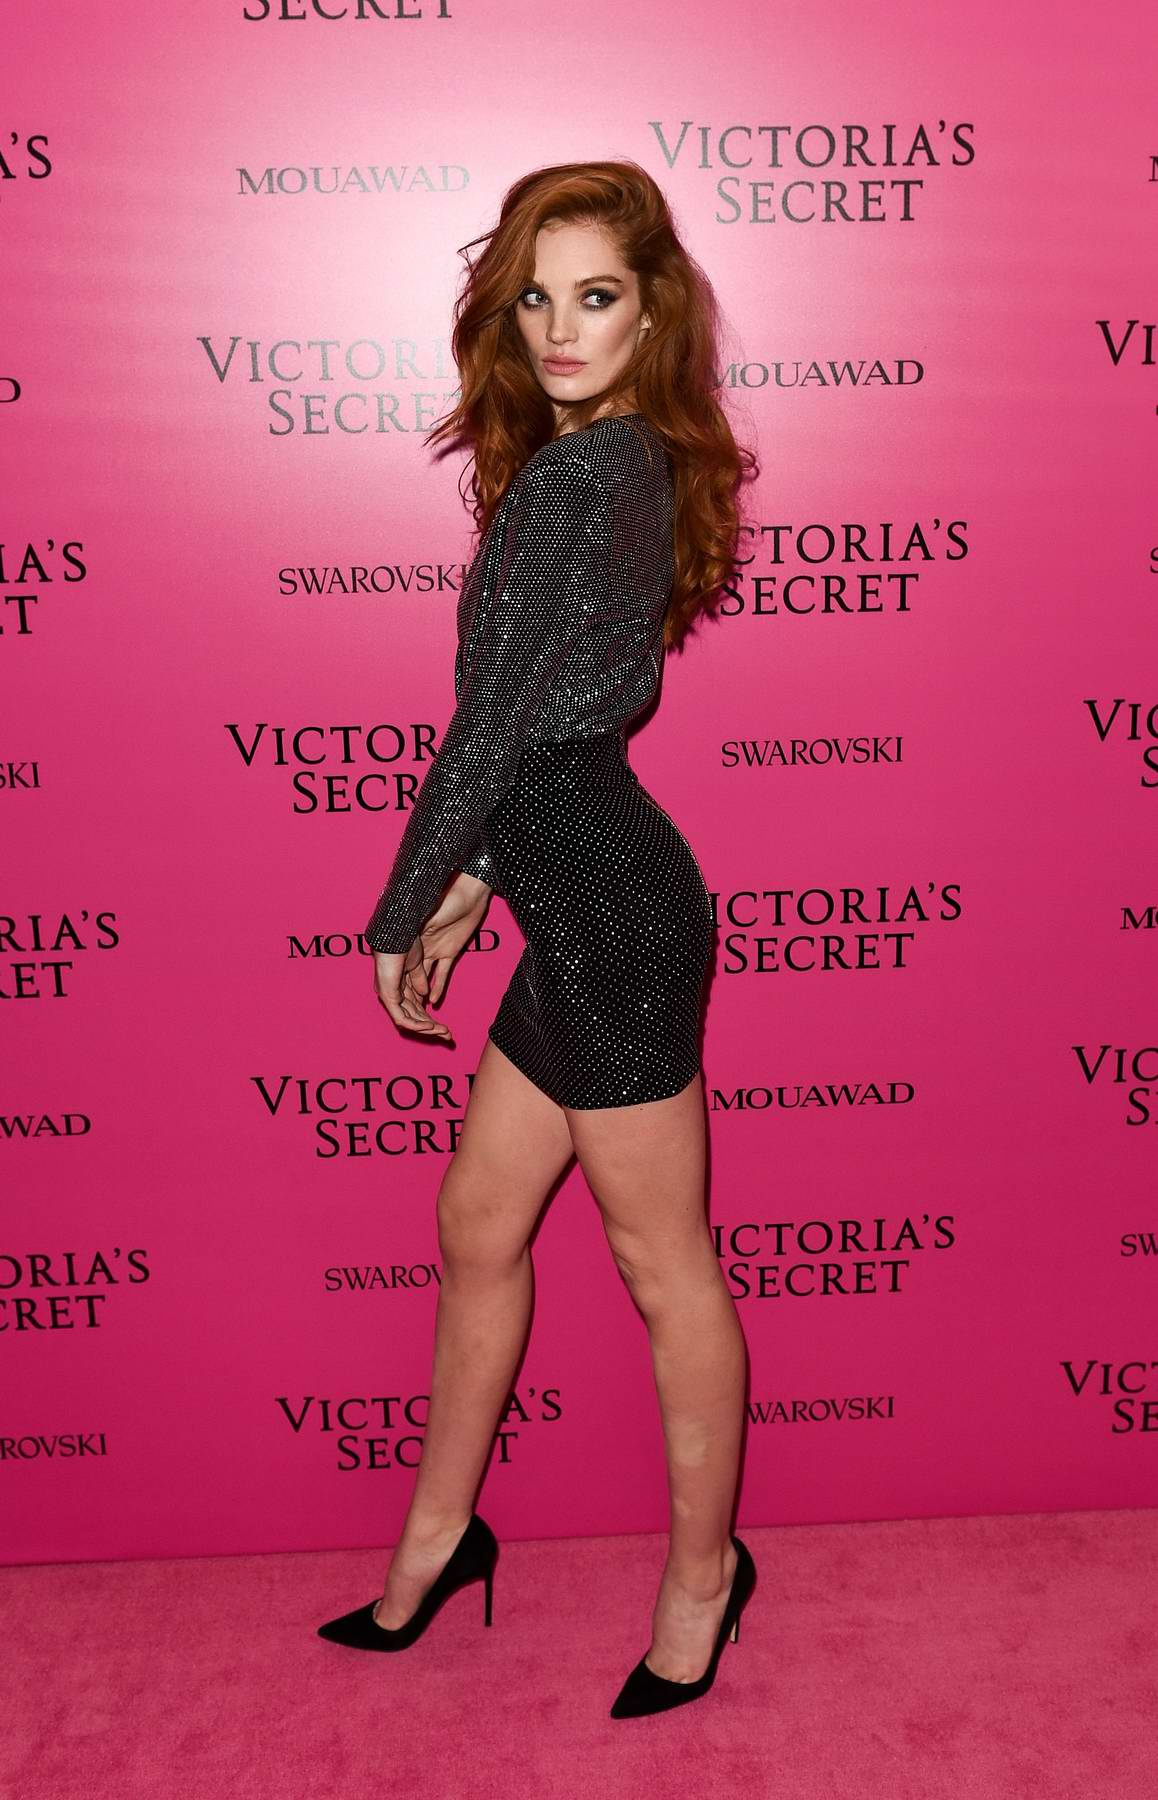 Alexina Graham at the Victoria's Secret fashion show, pink carpet and after party at Expo Center in Shanghai, China